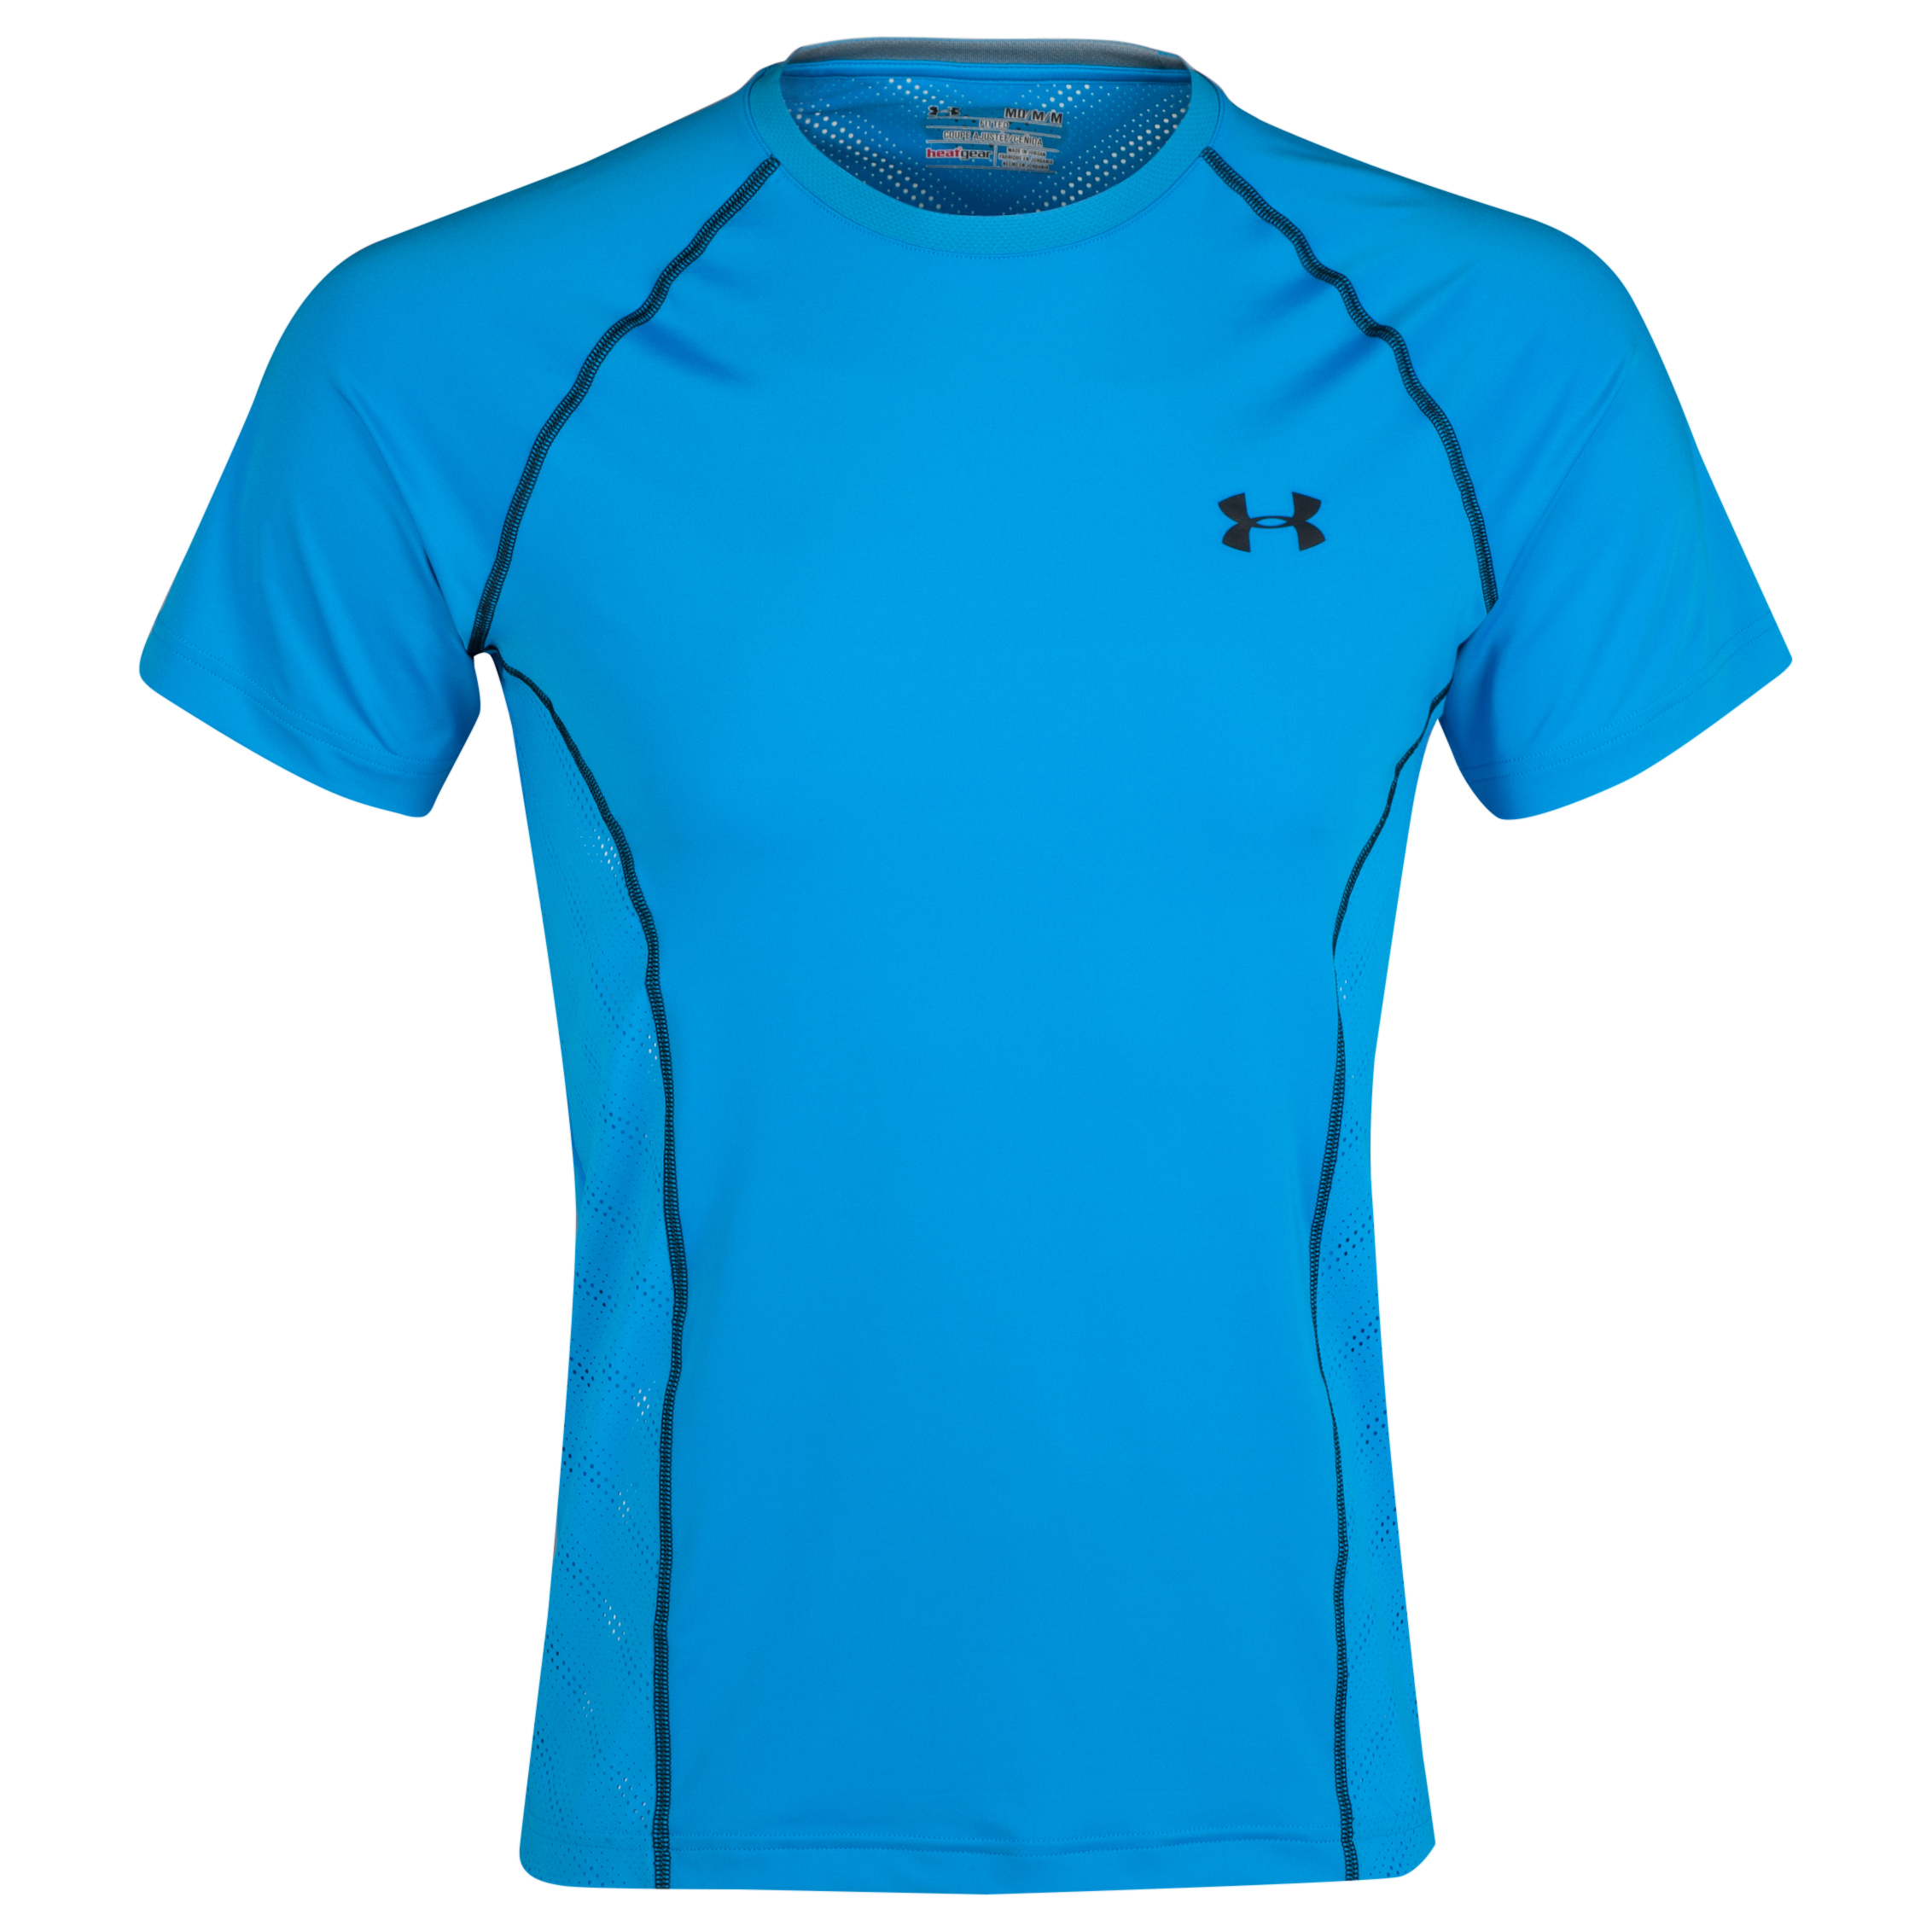 Under Armour Heatgear Sonic ArmourVent T-Shirt Blue